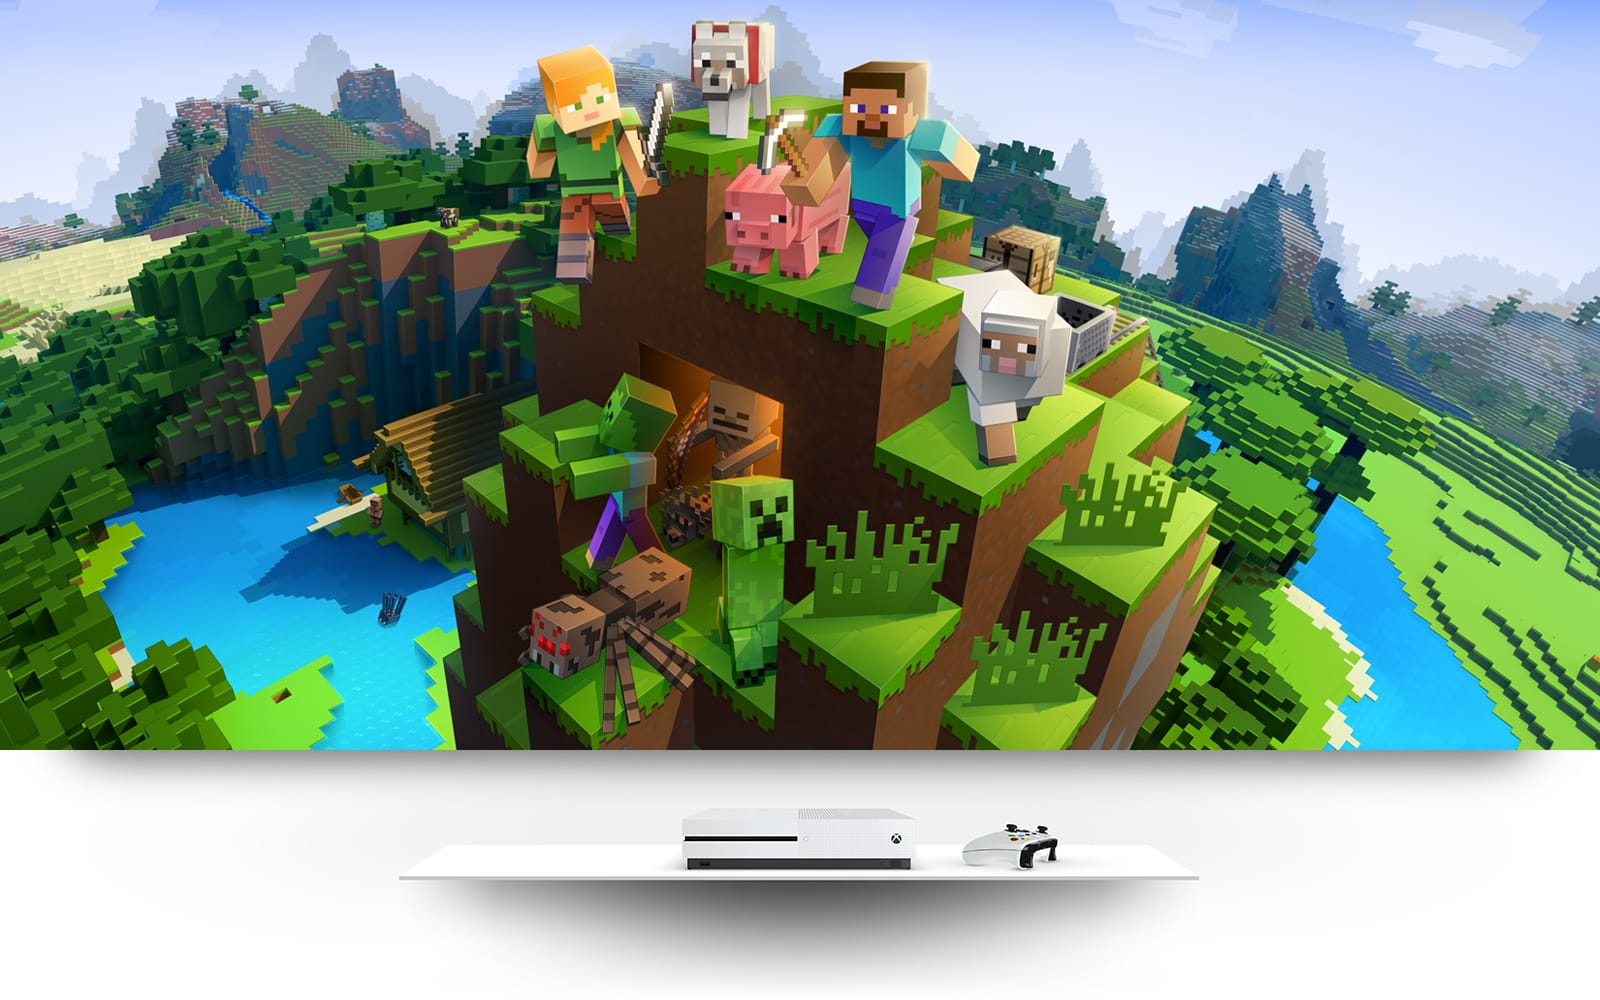 Minecraft world with minecraft players and animals